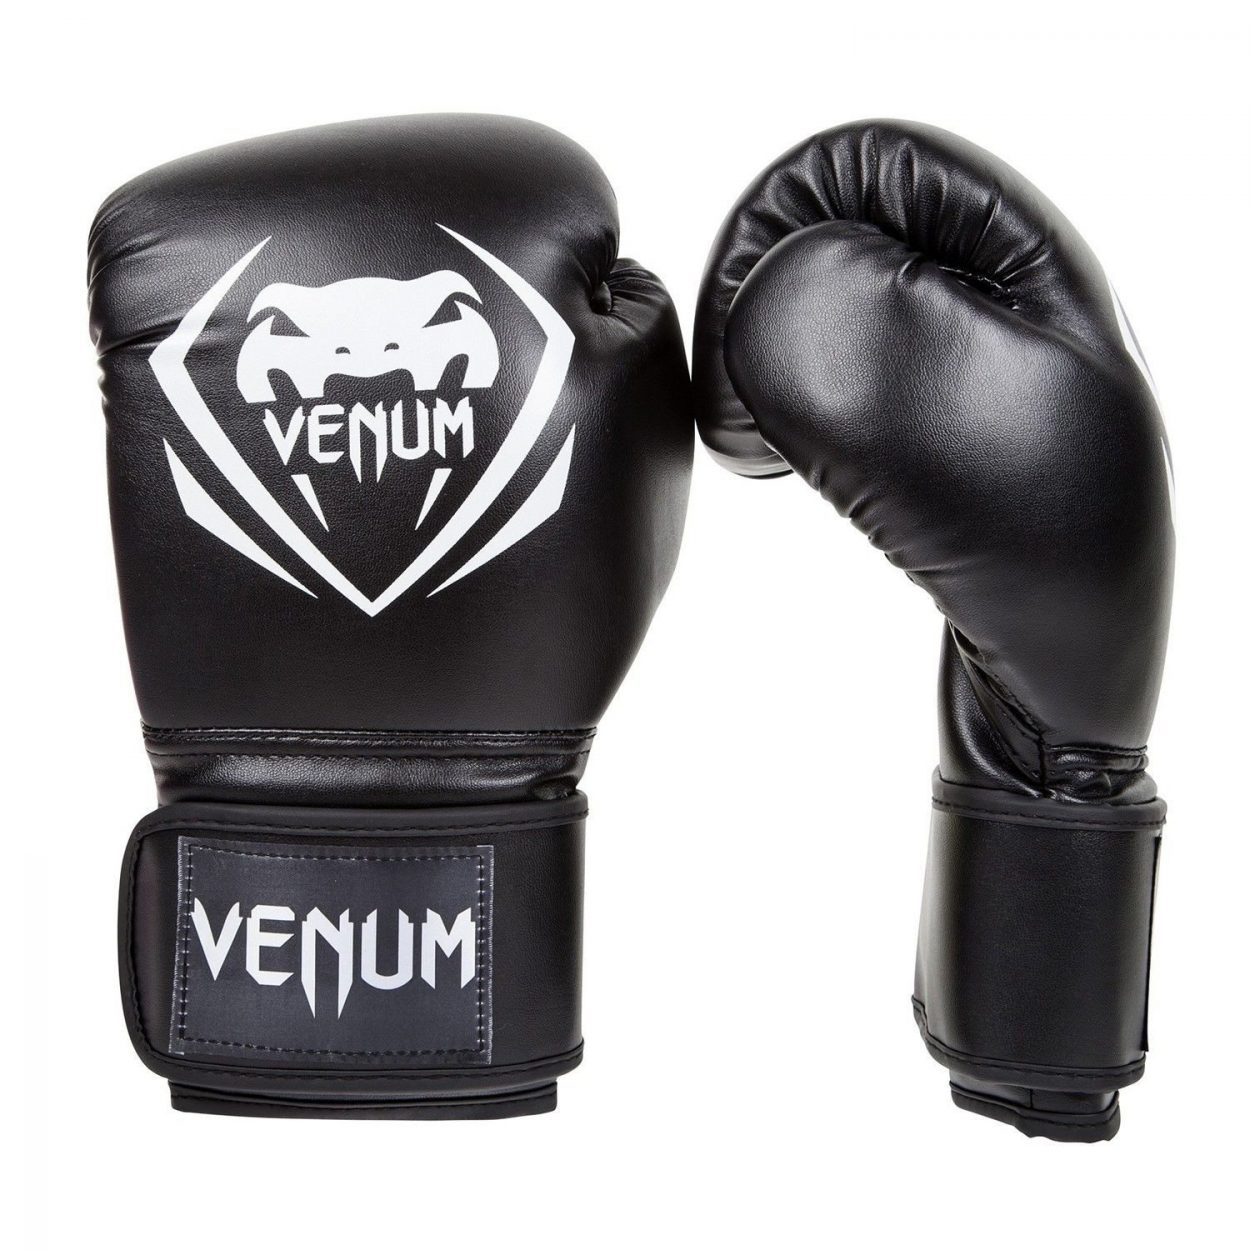 Evo Fitness Boxing Gloves Review: Venum Contender Boxing Gloves